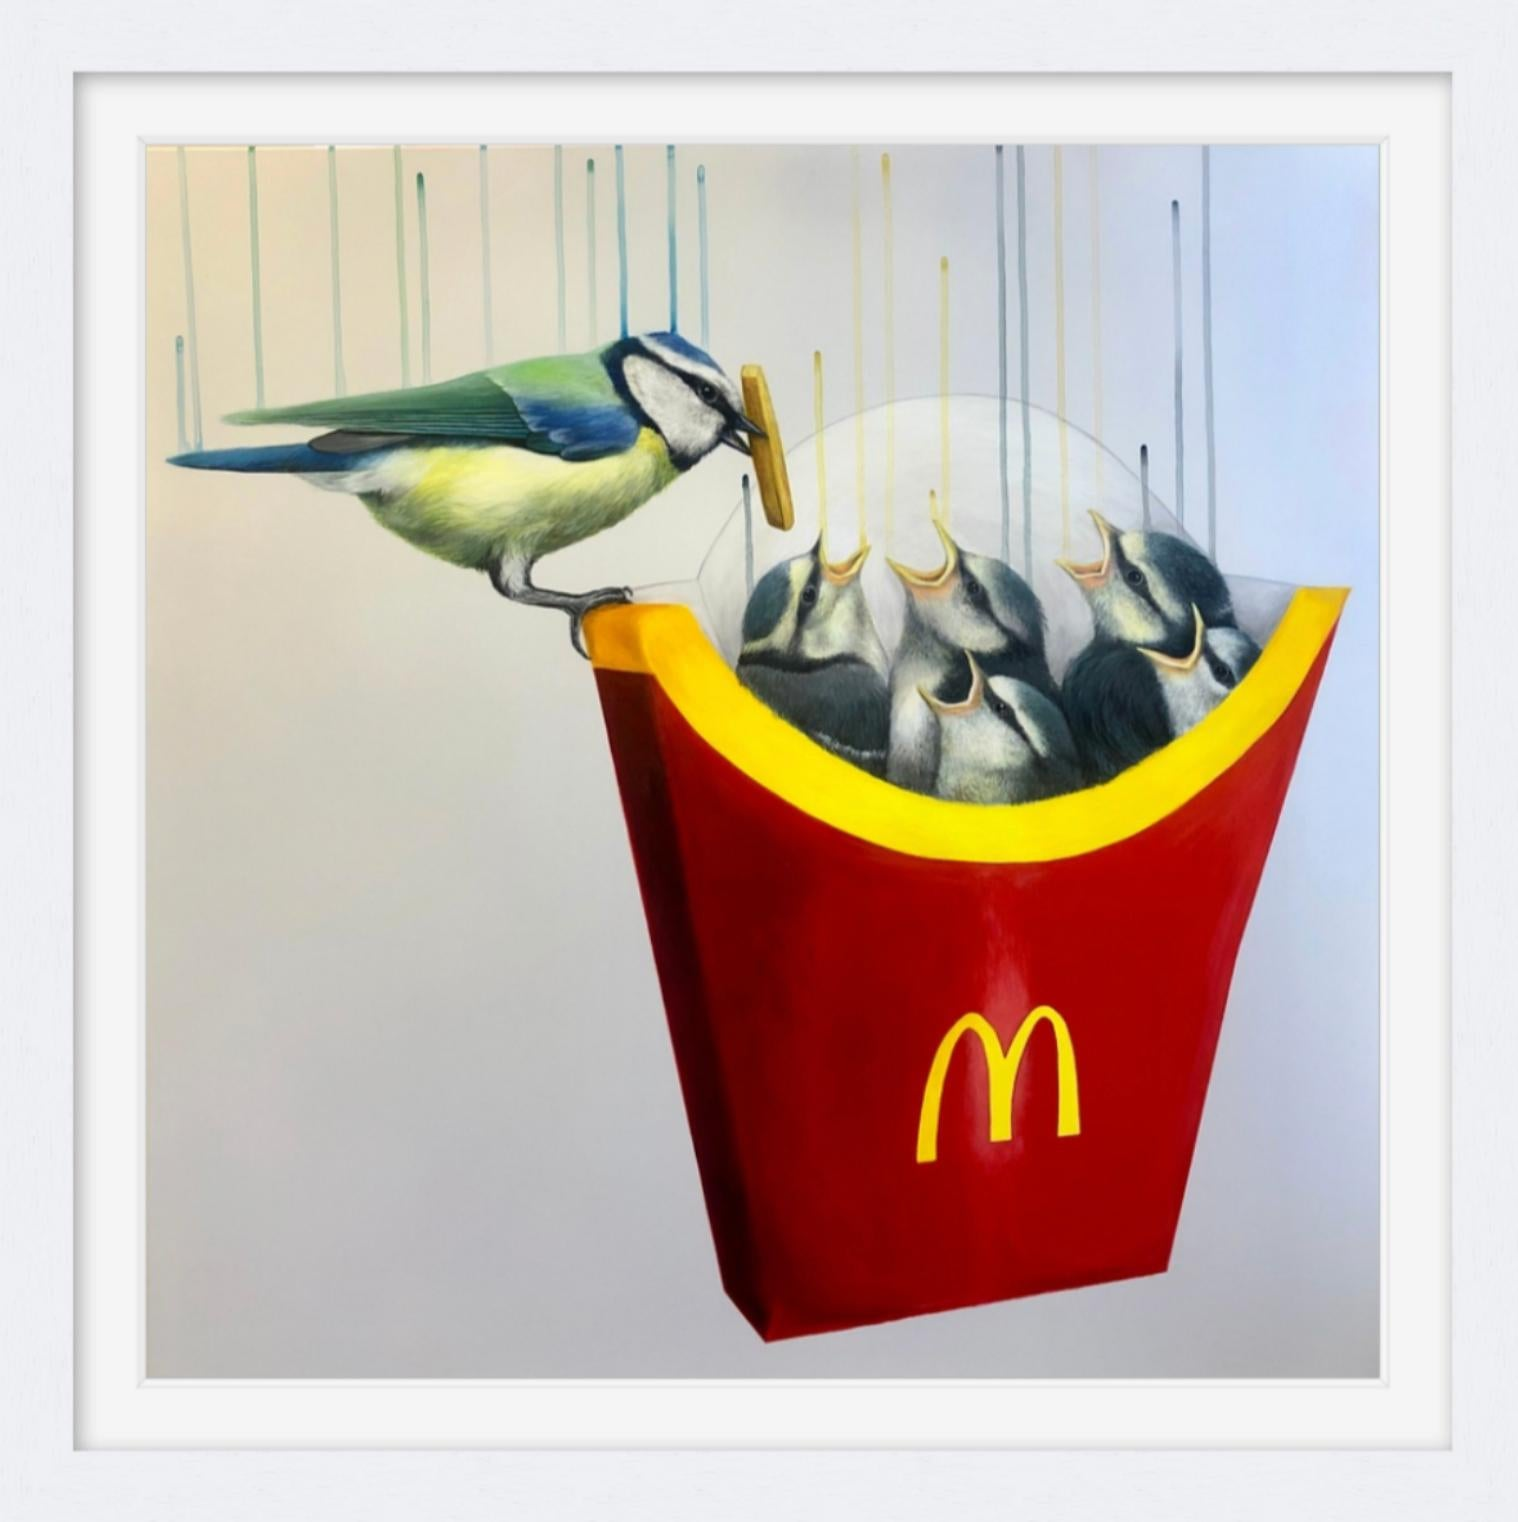 Instant Gratification by Louise McNaught - Contemporary Limited edition Print